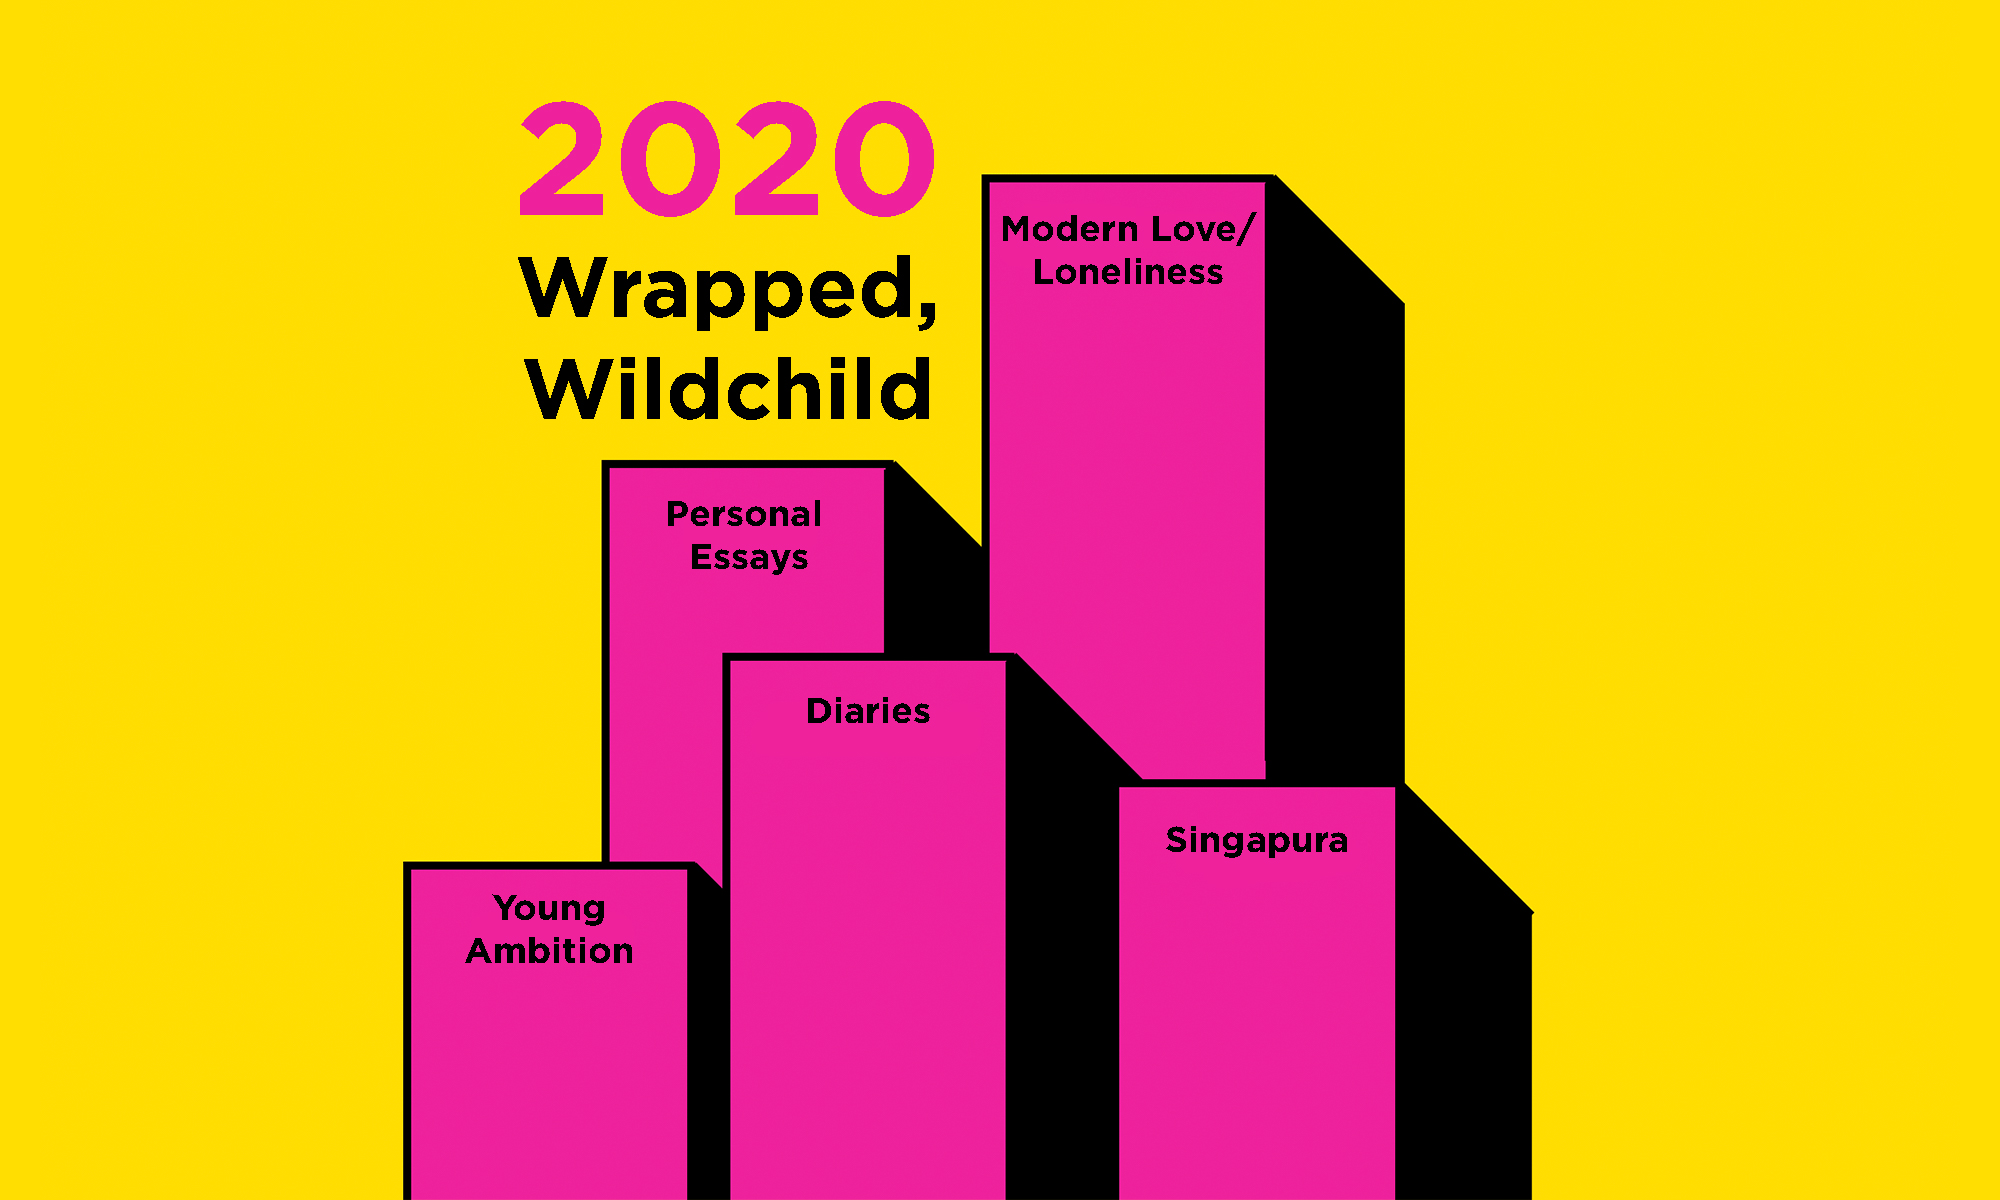 Spotify Wrapped 2020 inspired - WILDCHILD SG